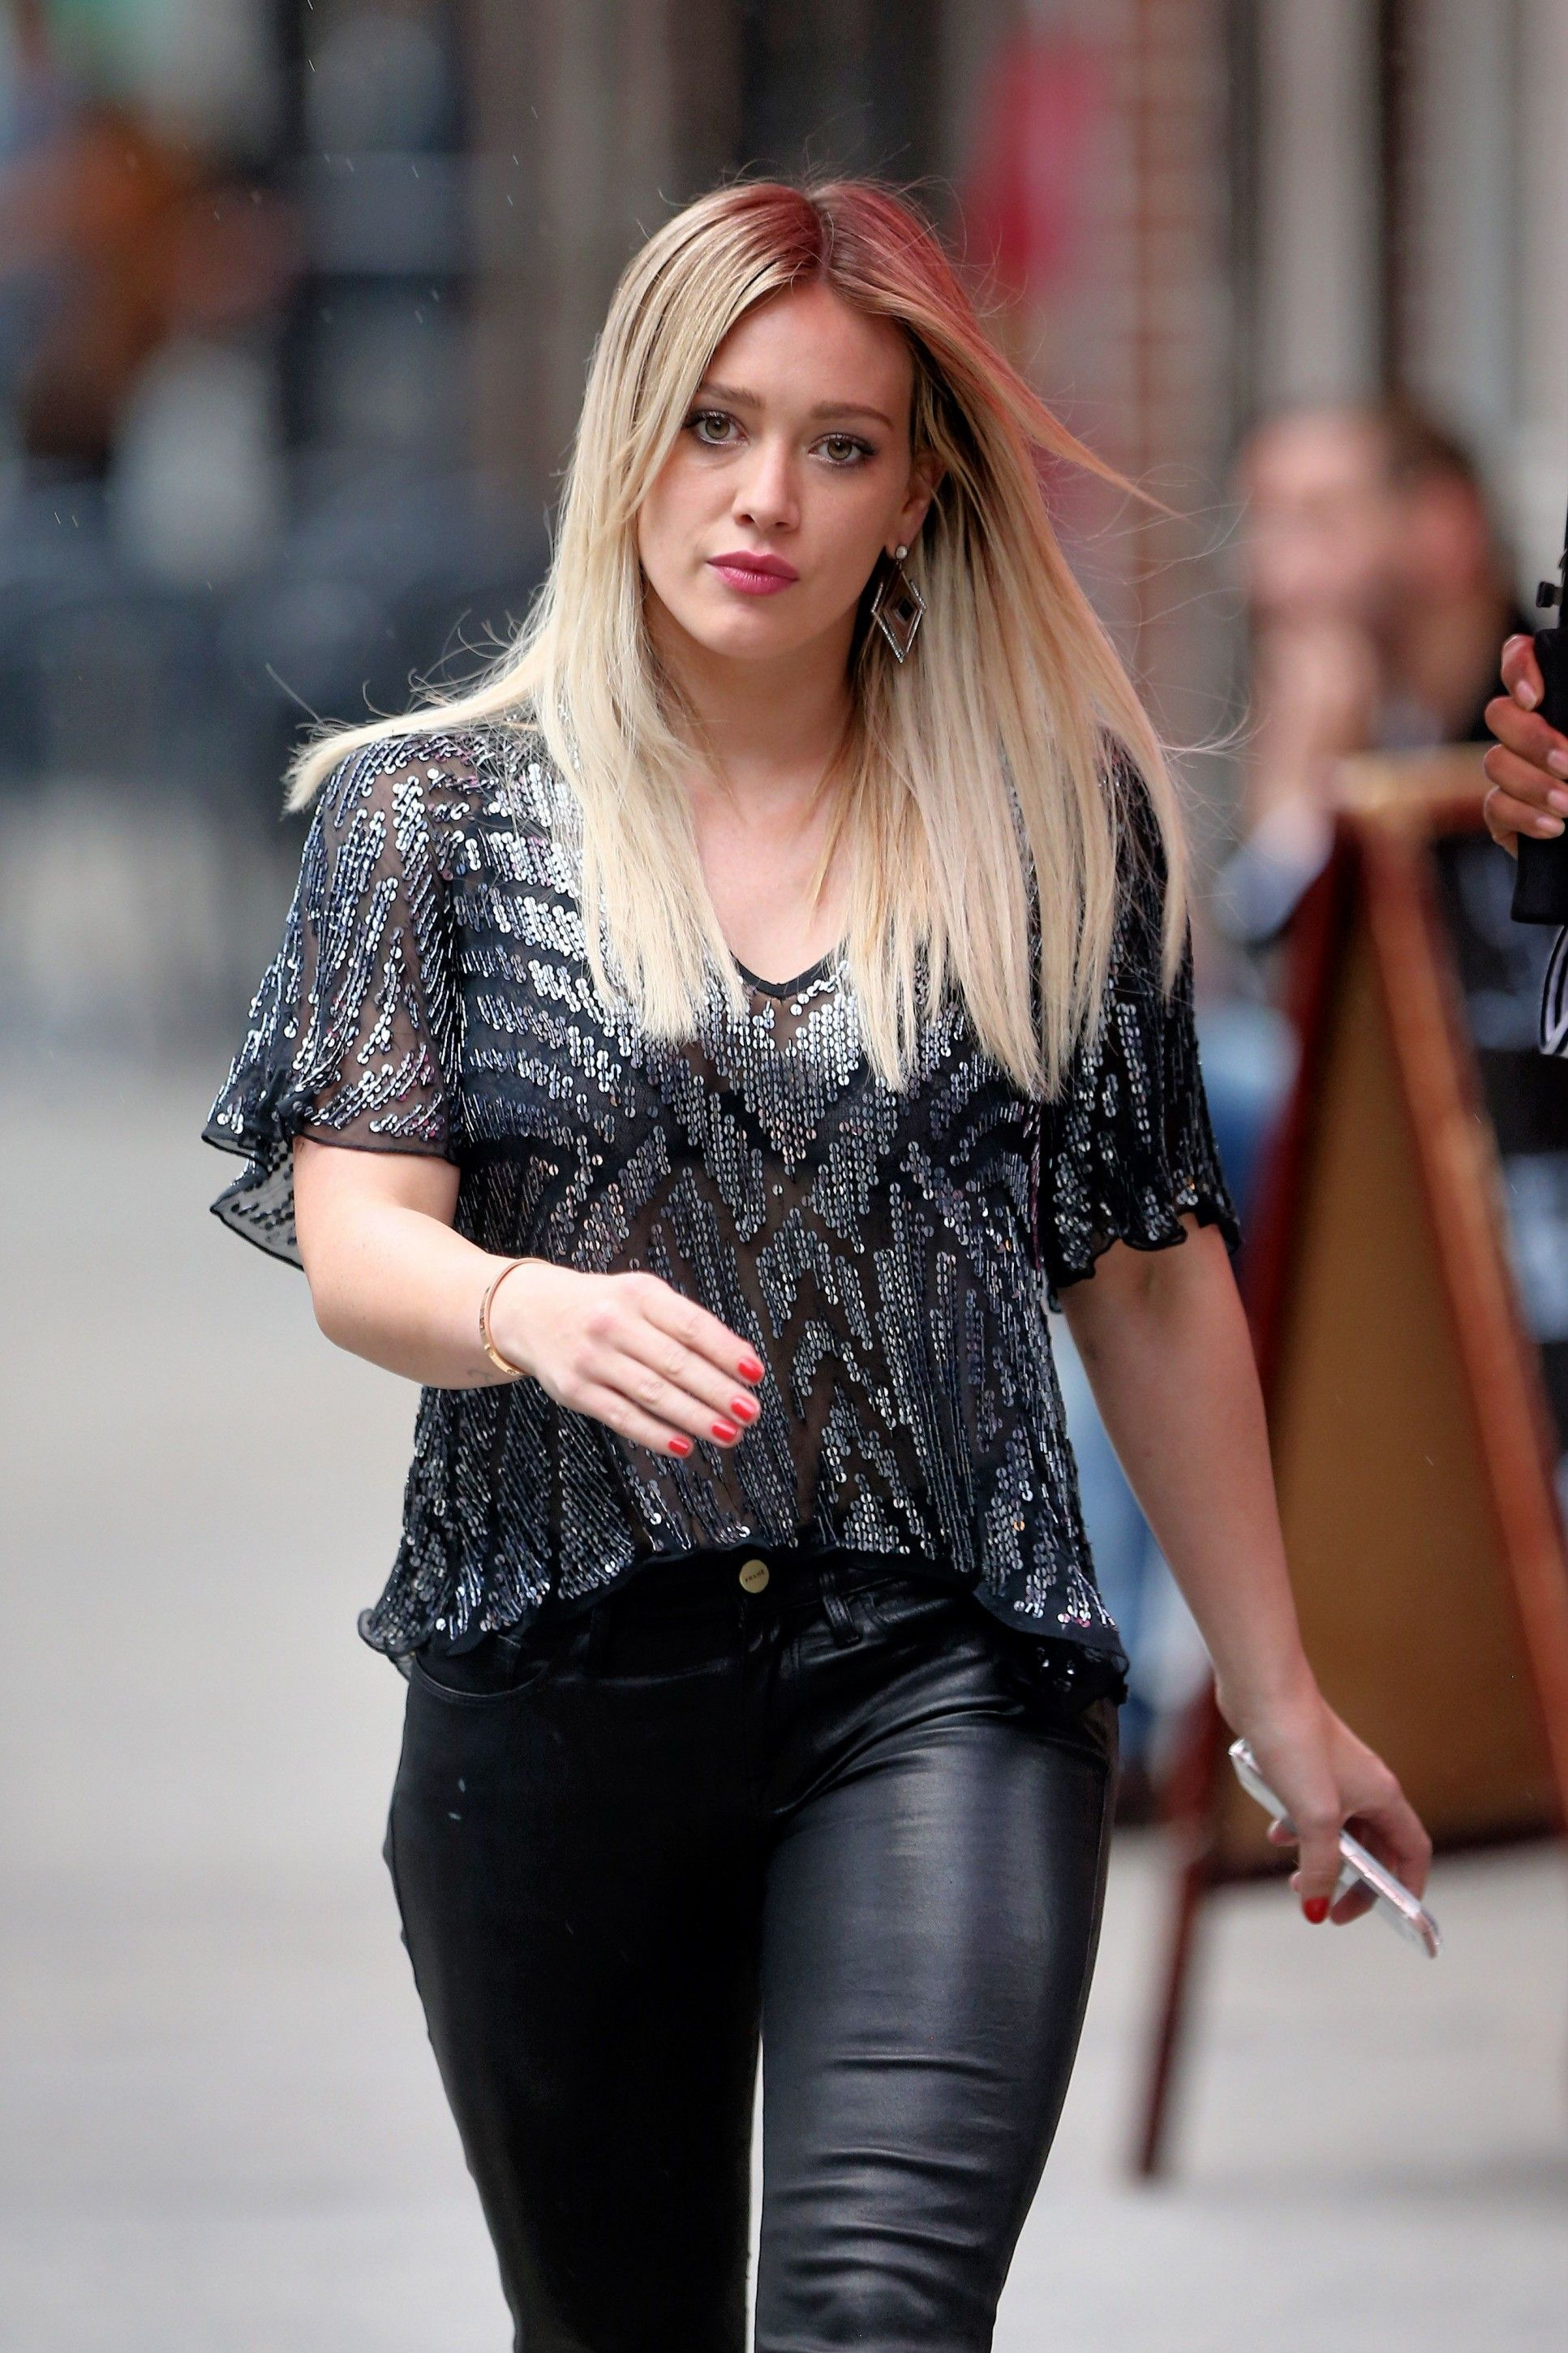 Hilary duff hilary duff pinterest hilary duff